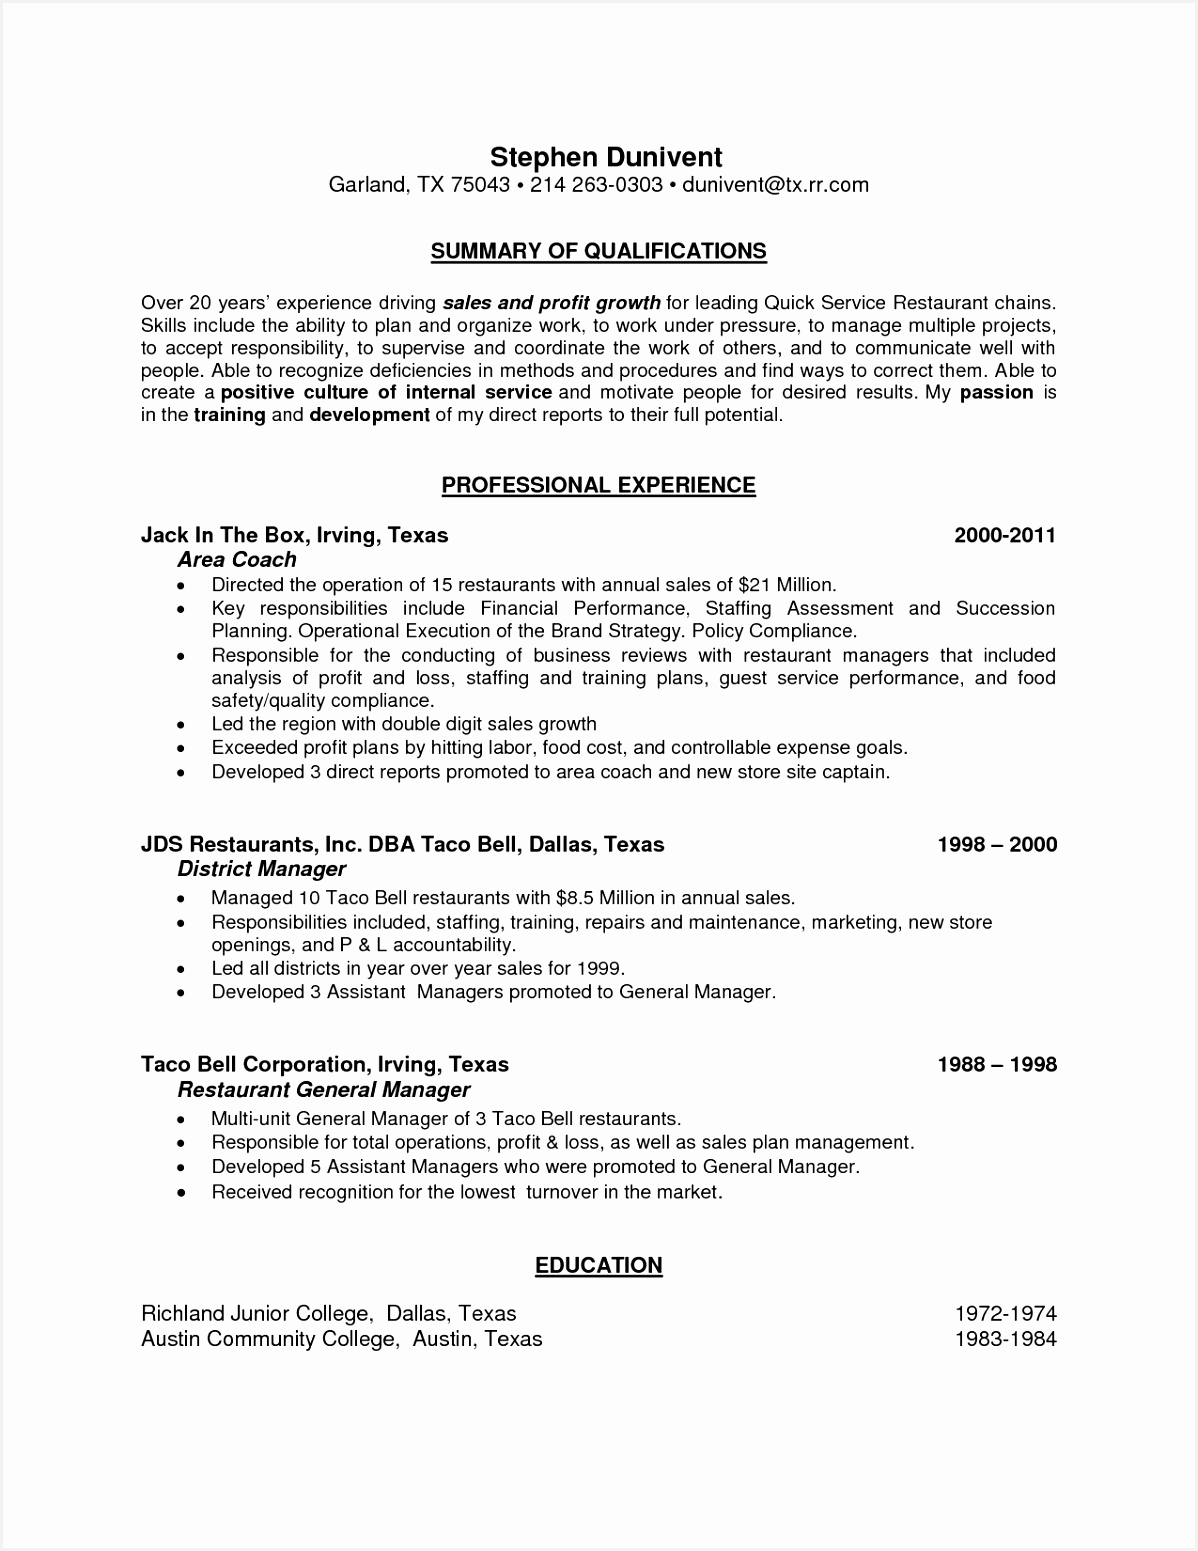 Examples Of Summary Of Qualifications for Resume Zokdf Beautiful 9 Professional Summary Resume Examples Samples15511198